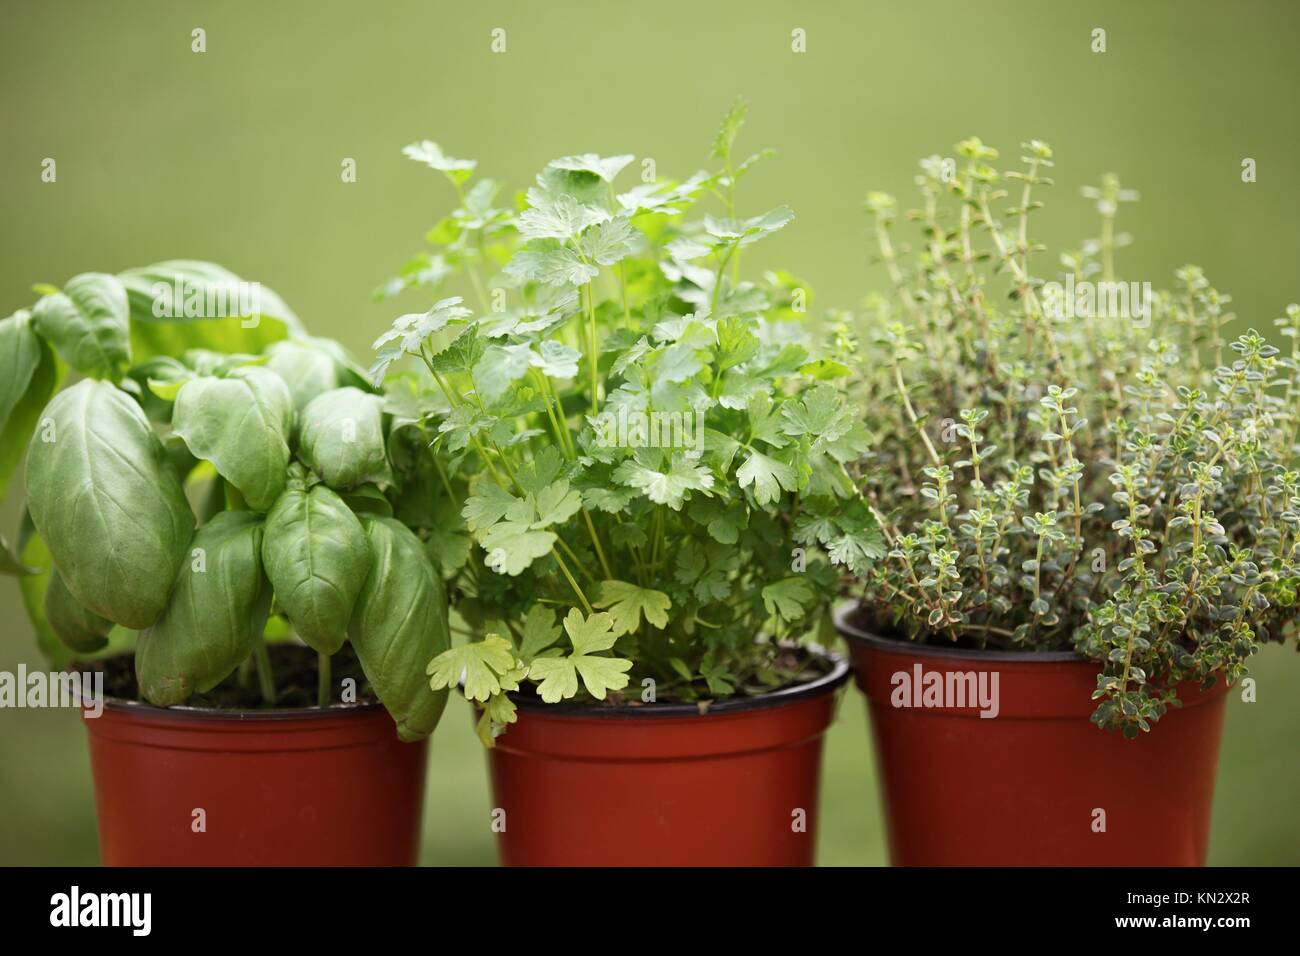 how to grow basil in a pot outdoors